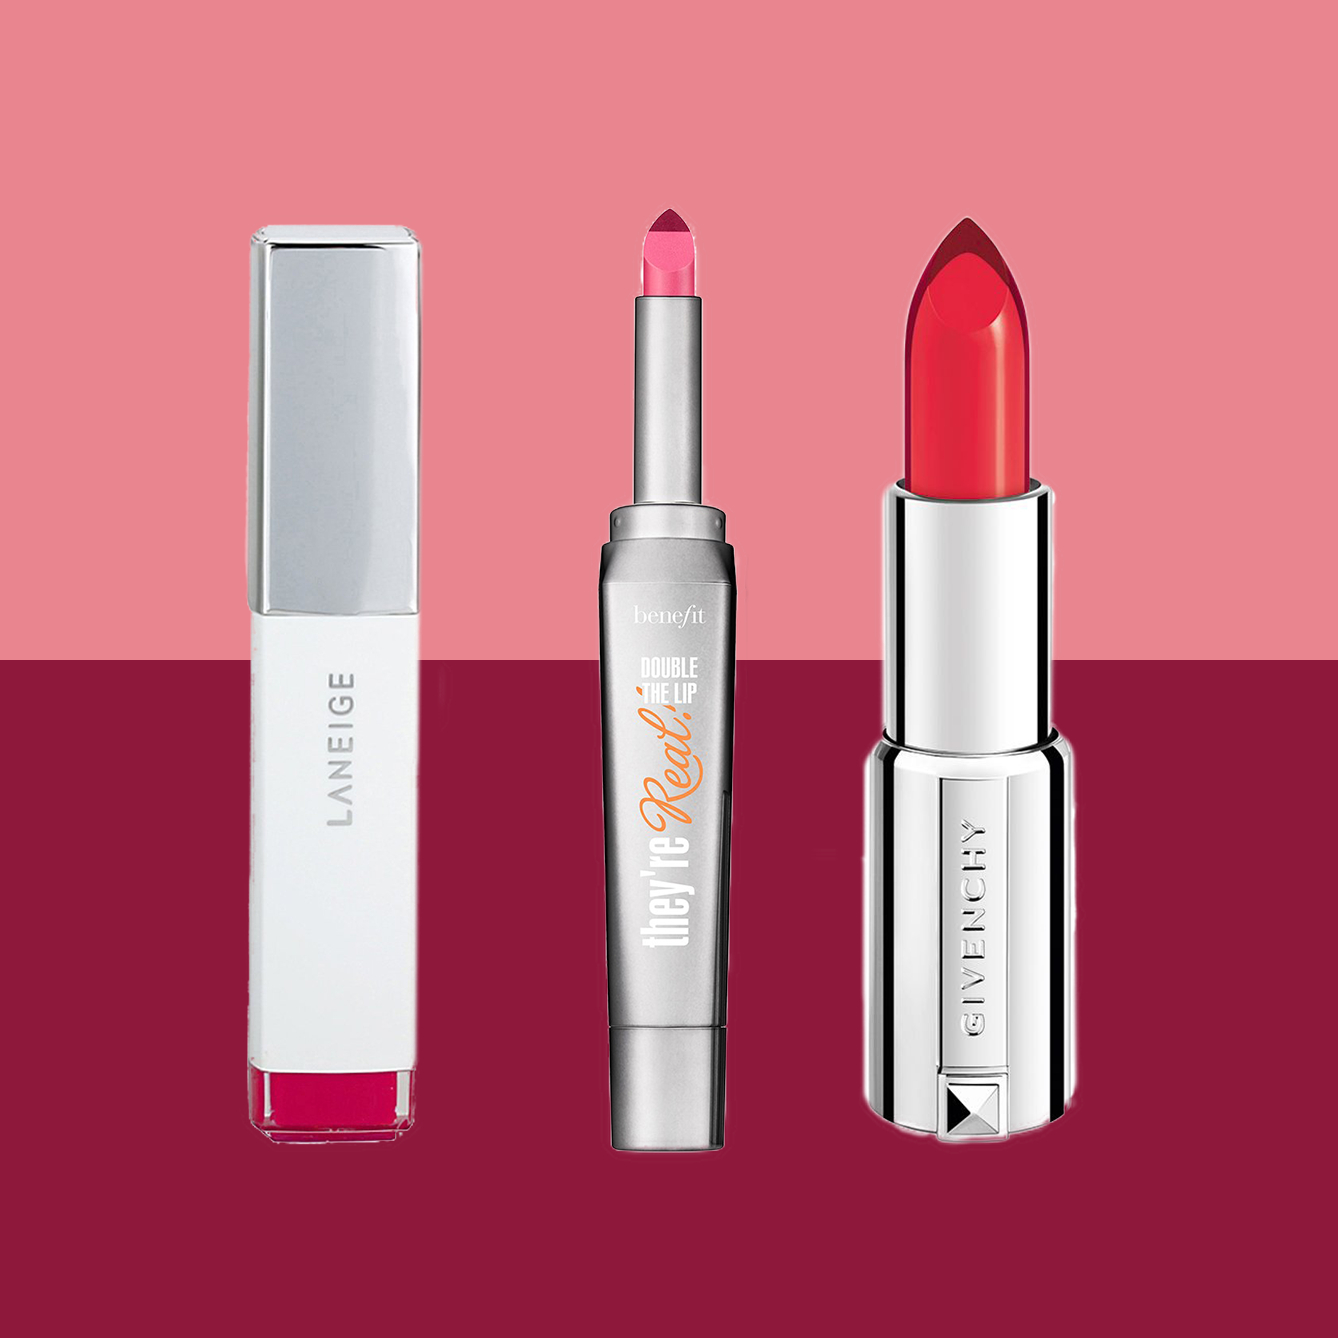 Two-Toned Lipstick is the Summer Trend You Need